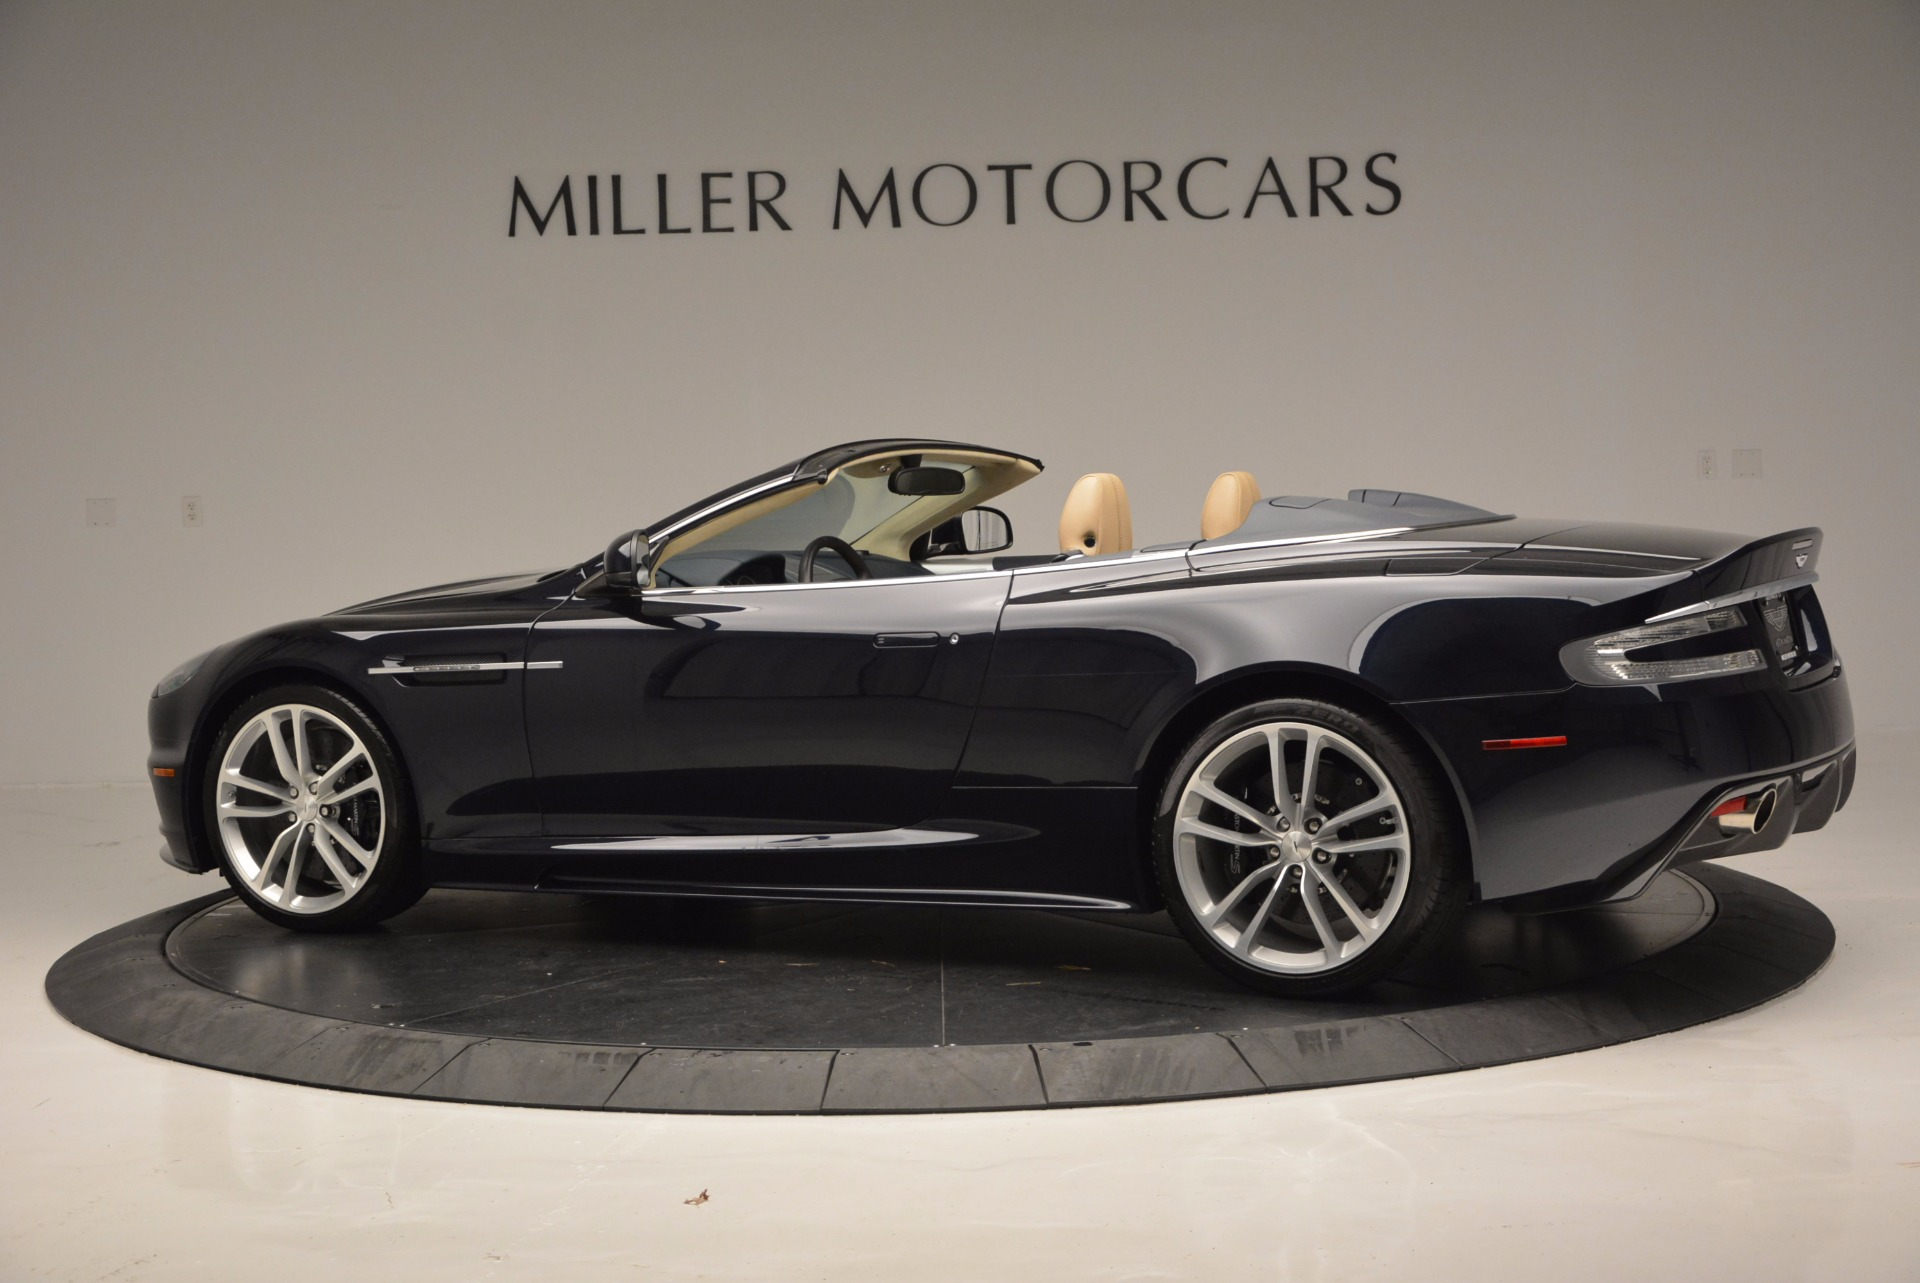 Used 2012 Aston Martin DBS Volante For Sale In Westport, CT 644_p4